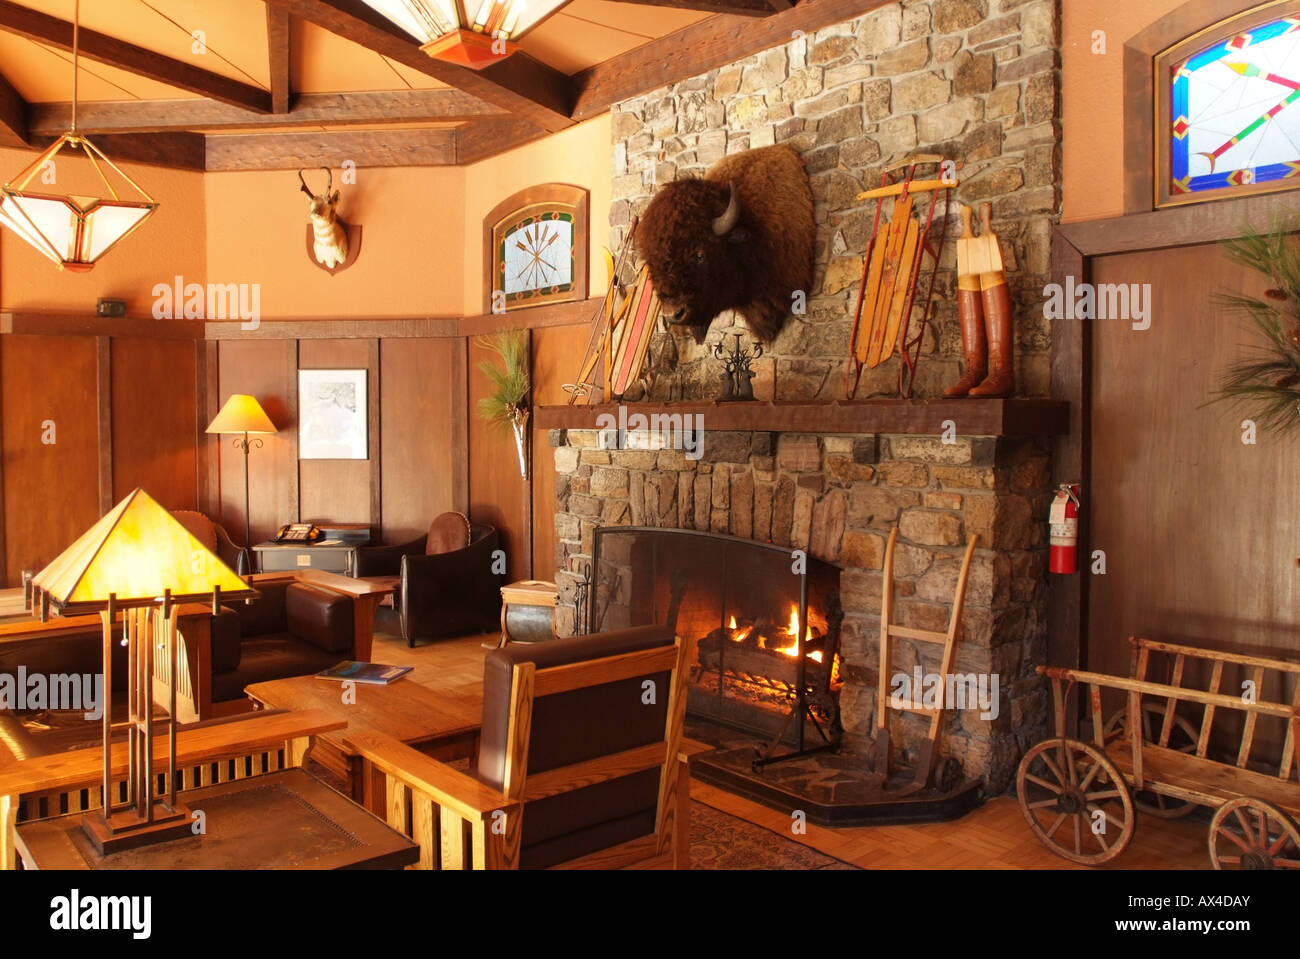 CANADA Alberta Banff Banff National Park Lake Louise Deer Lodge interior lounge sitting area Stock Photo